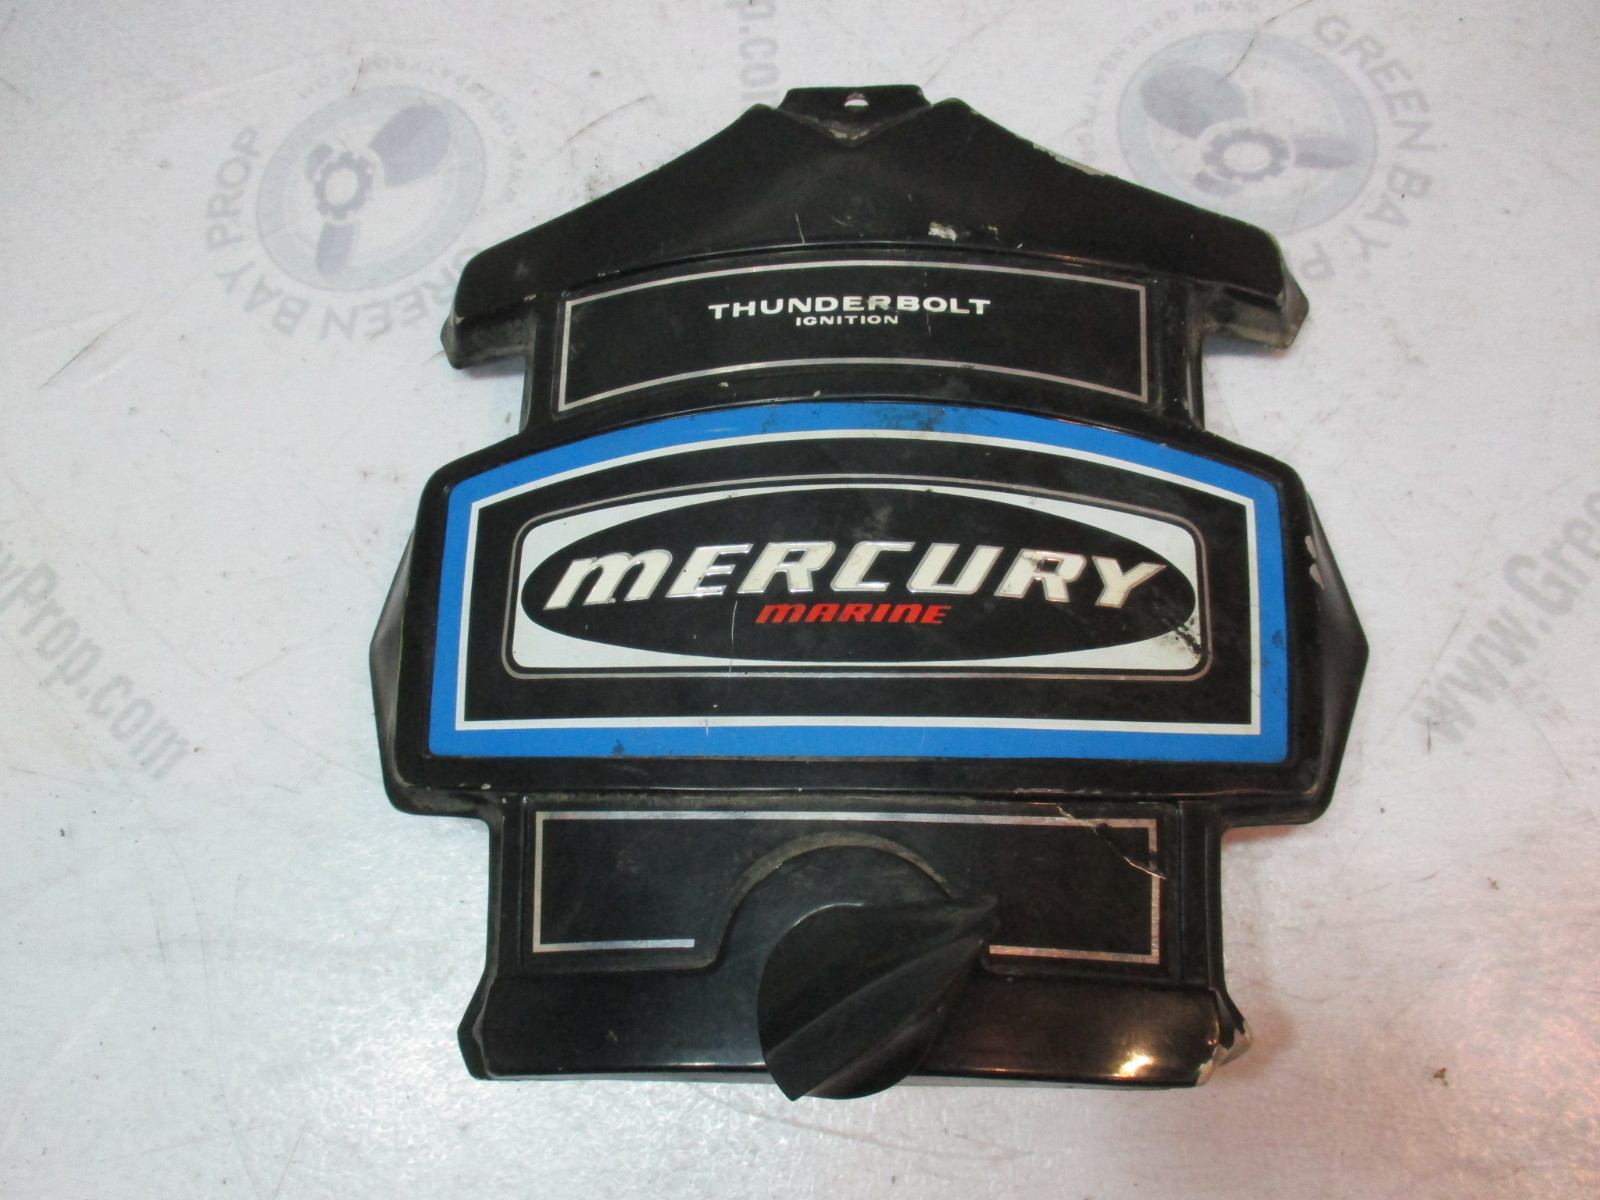 hight resolution of mercury outboard thunderbolt ignition blue black front cowl cover green bay propeller marine llc